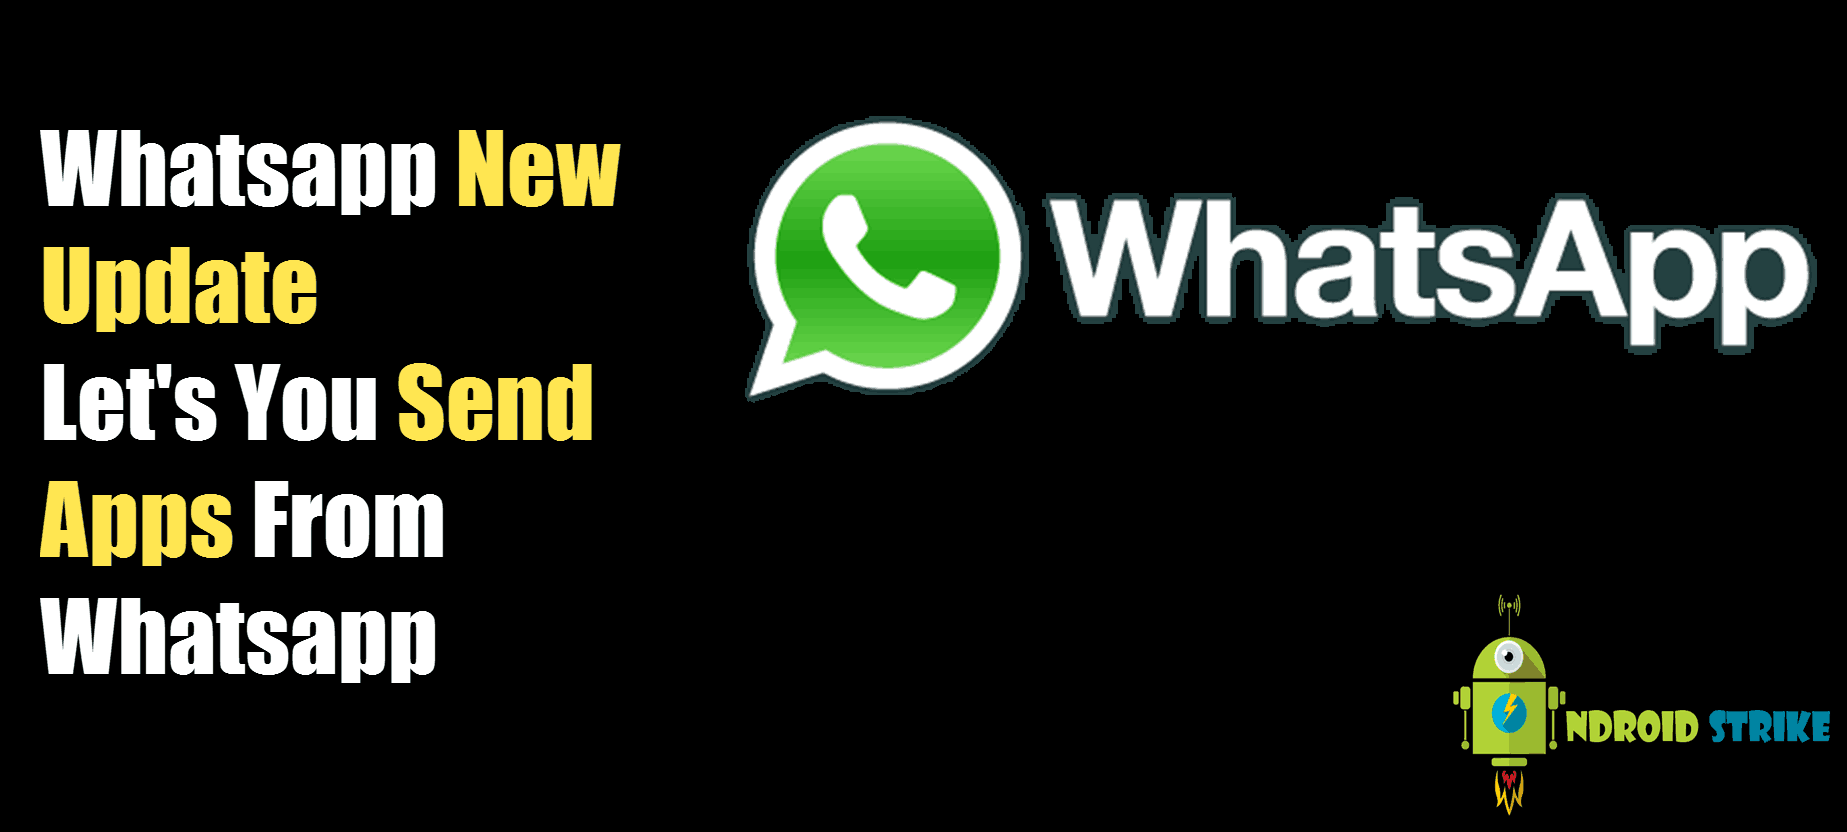 Photo of WhatsApp New Update: Allows you to Send Apps and Games to Friends